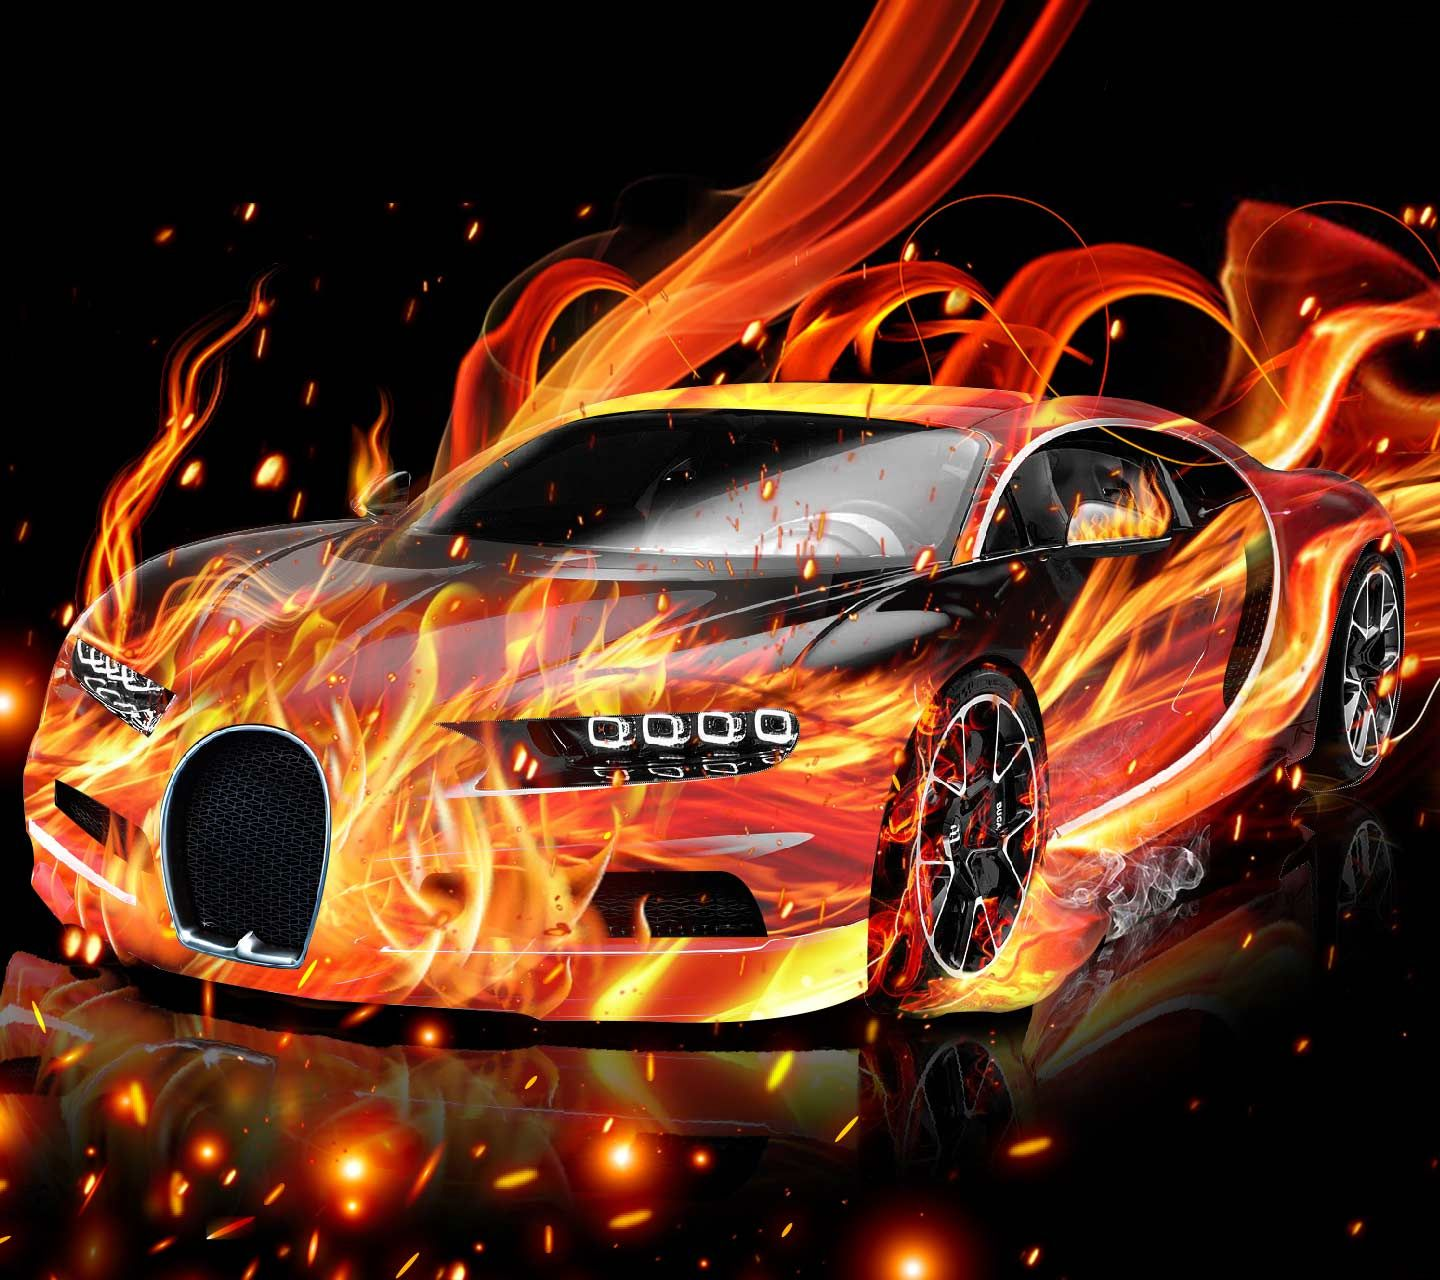 Super Car Flame Style. Fast And Furious, Luxury Lifestyle